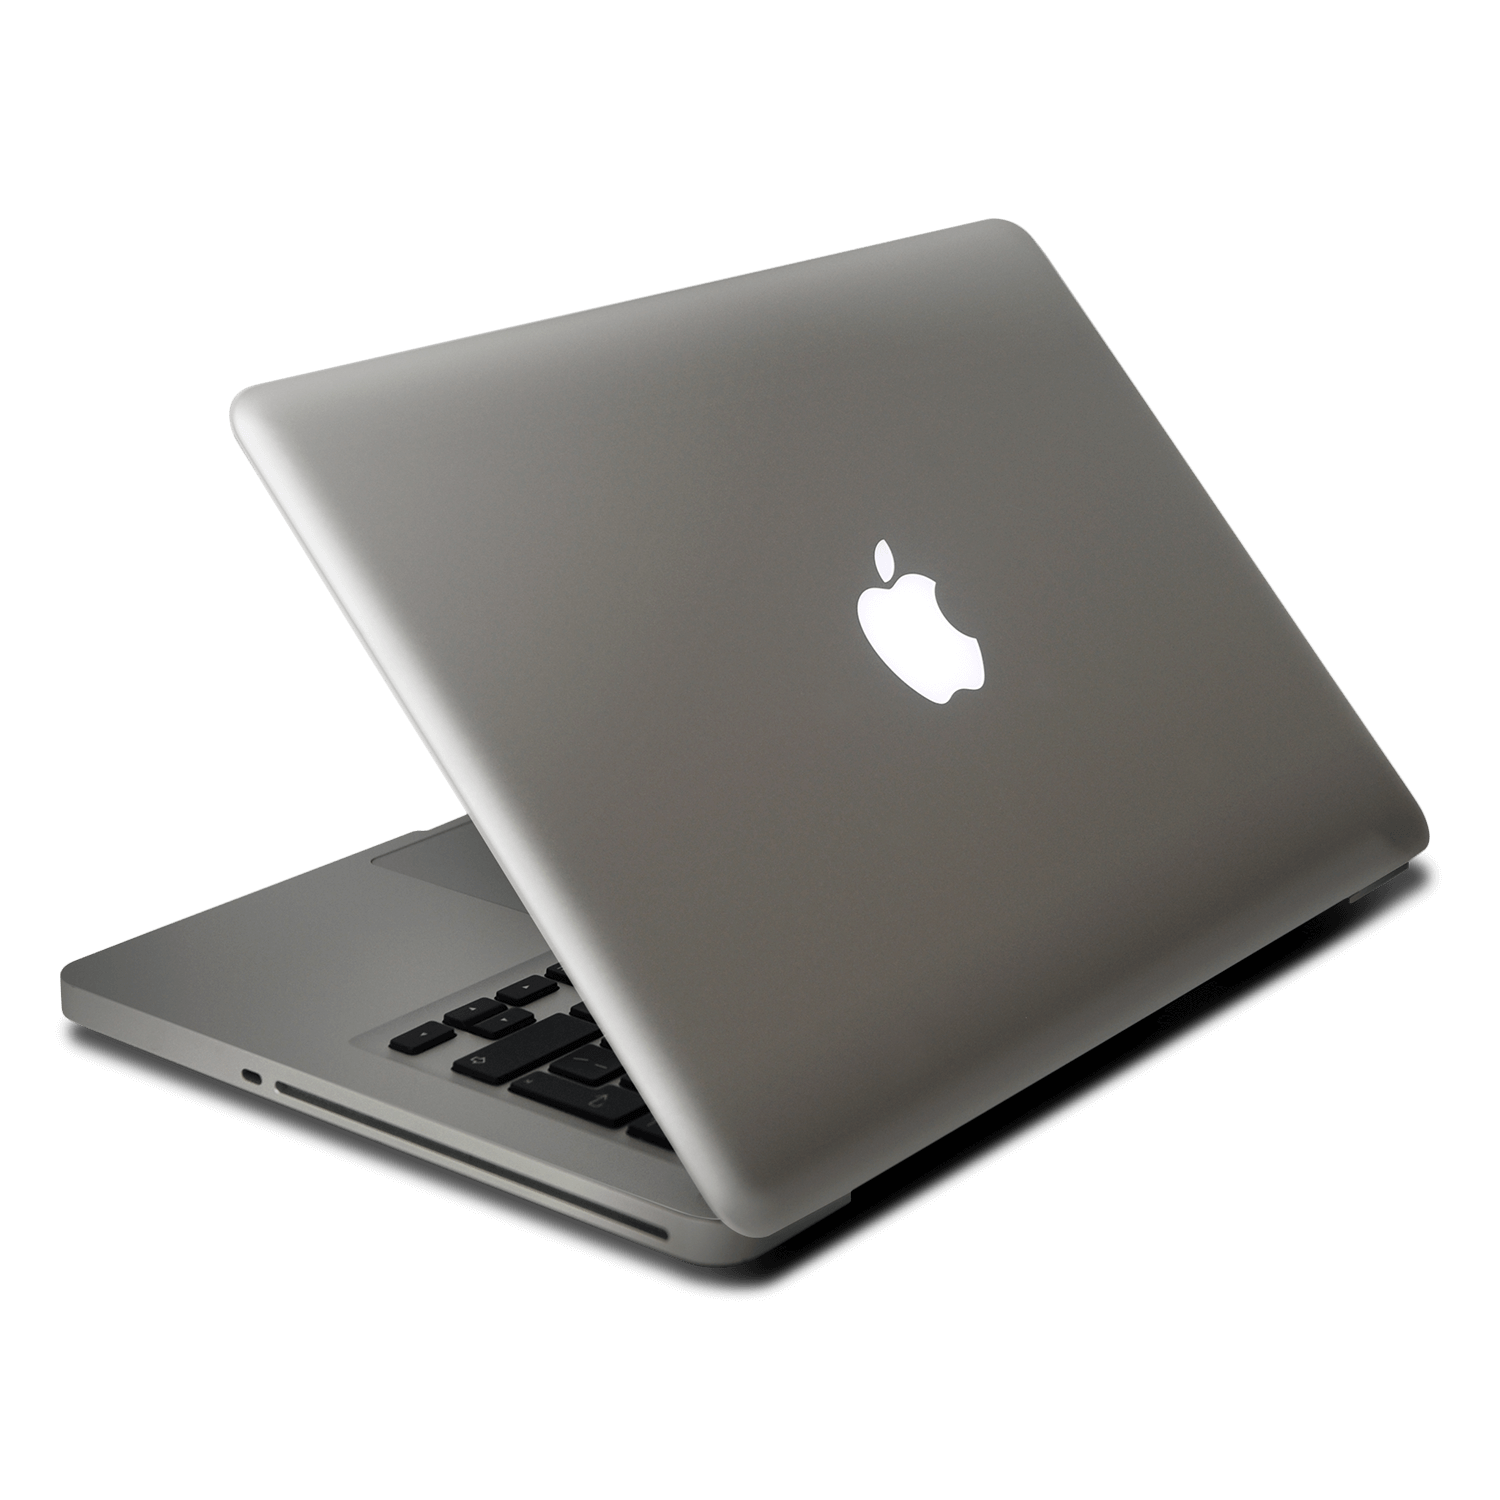 macbook_pro_template_2048x.png?v=1564558